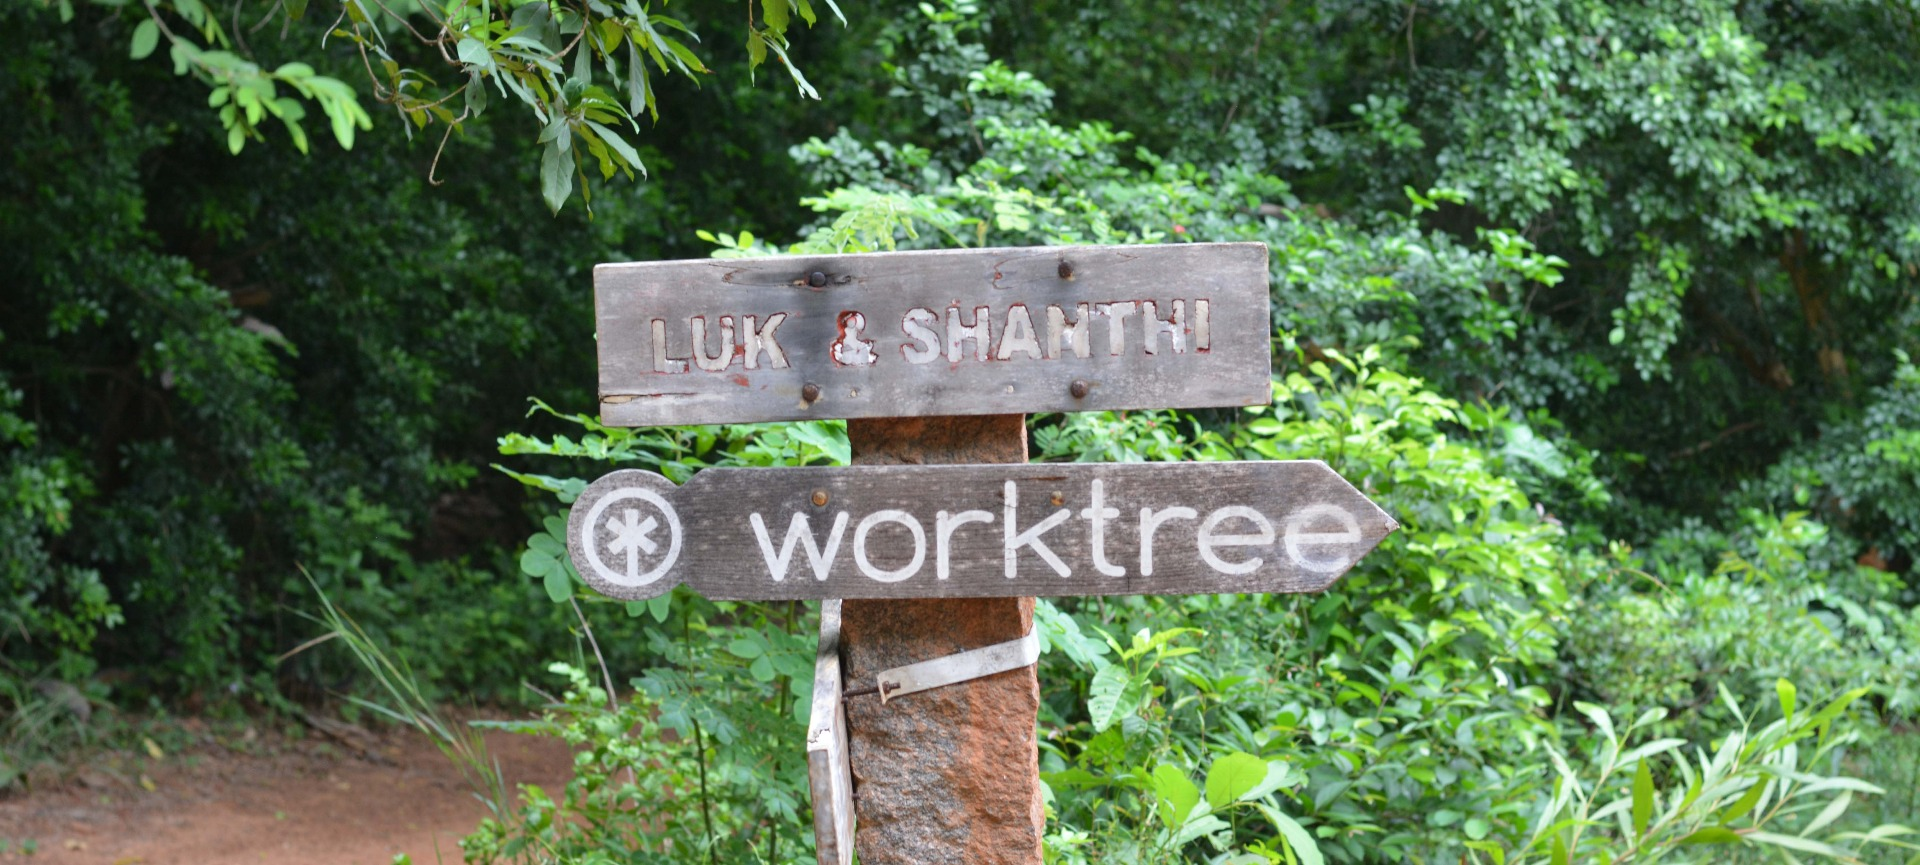 worktree sign